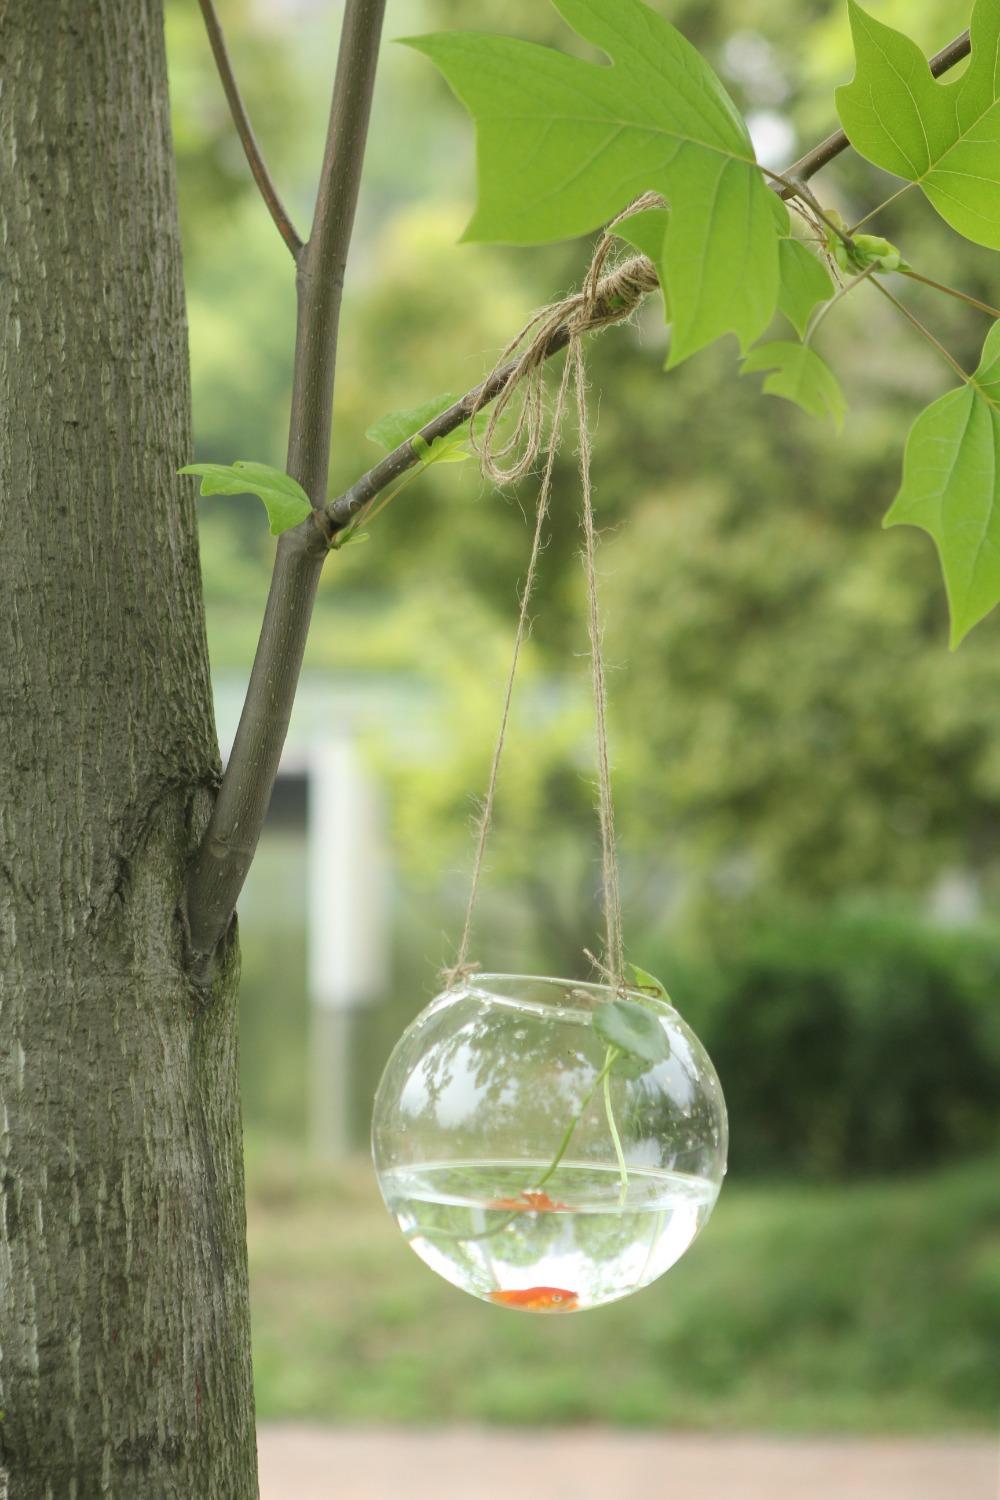 Hanging glass bauble flower vase candle holders garden window hanging glass bauble flower vase candle holders garden window wedding dia10cm x1 in vases from home garden on aliexpress alibaba group reviewsmspy